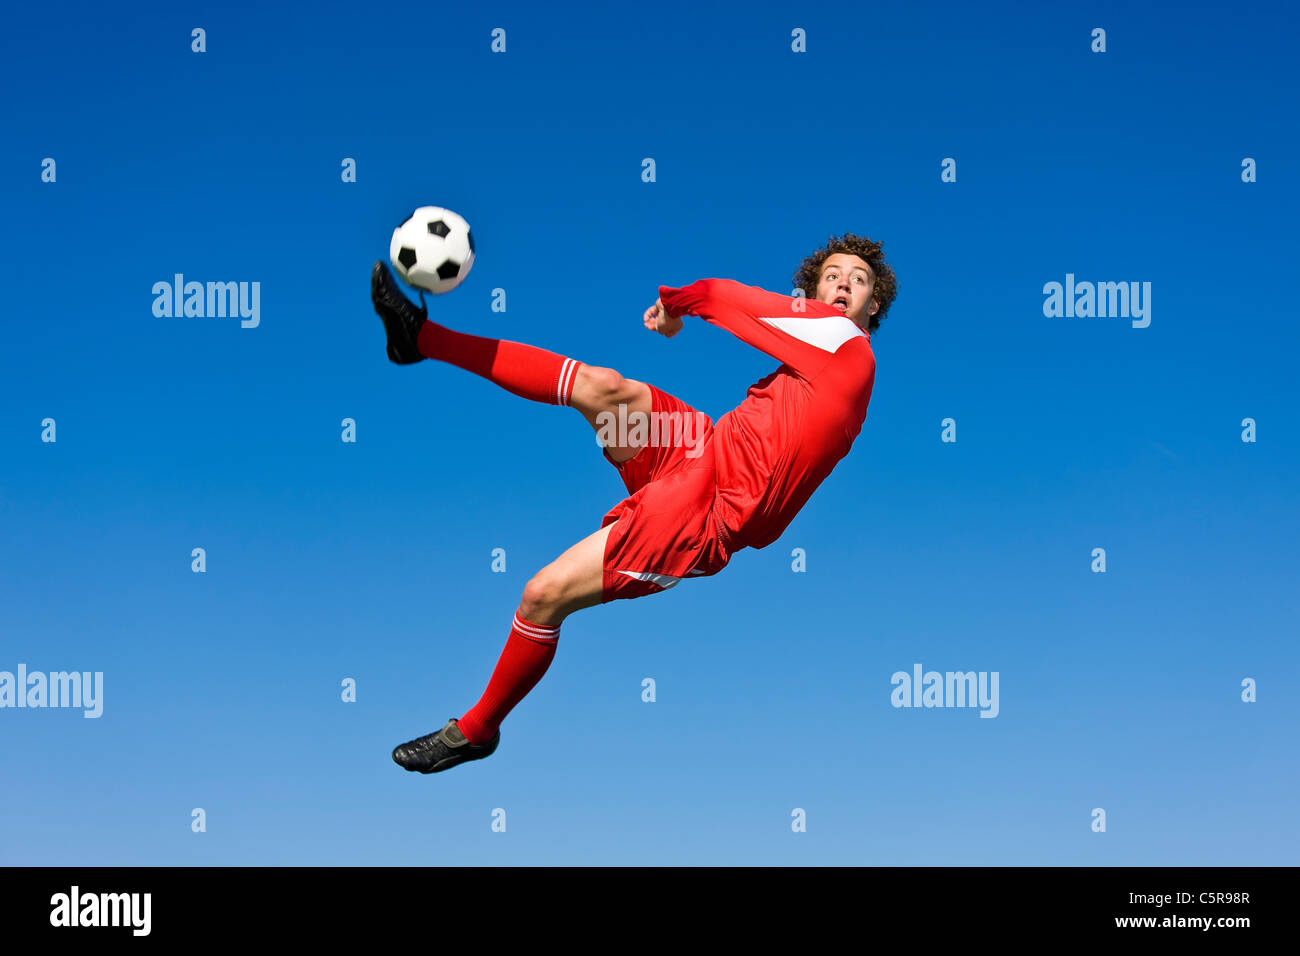 A soccer player volleys the ball. - Stock Image